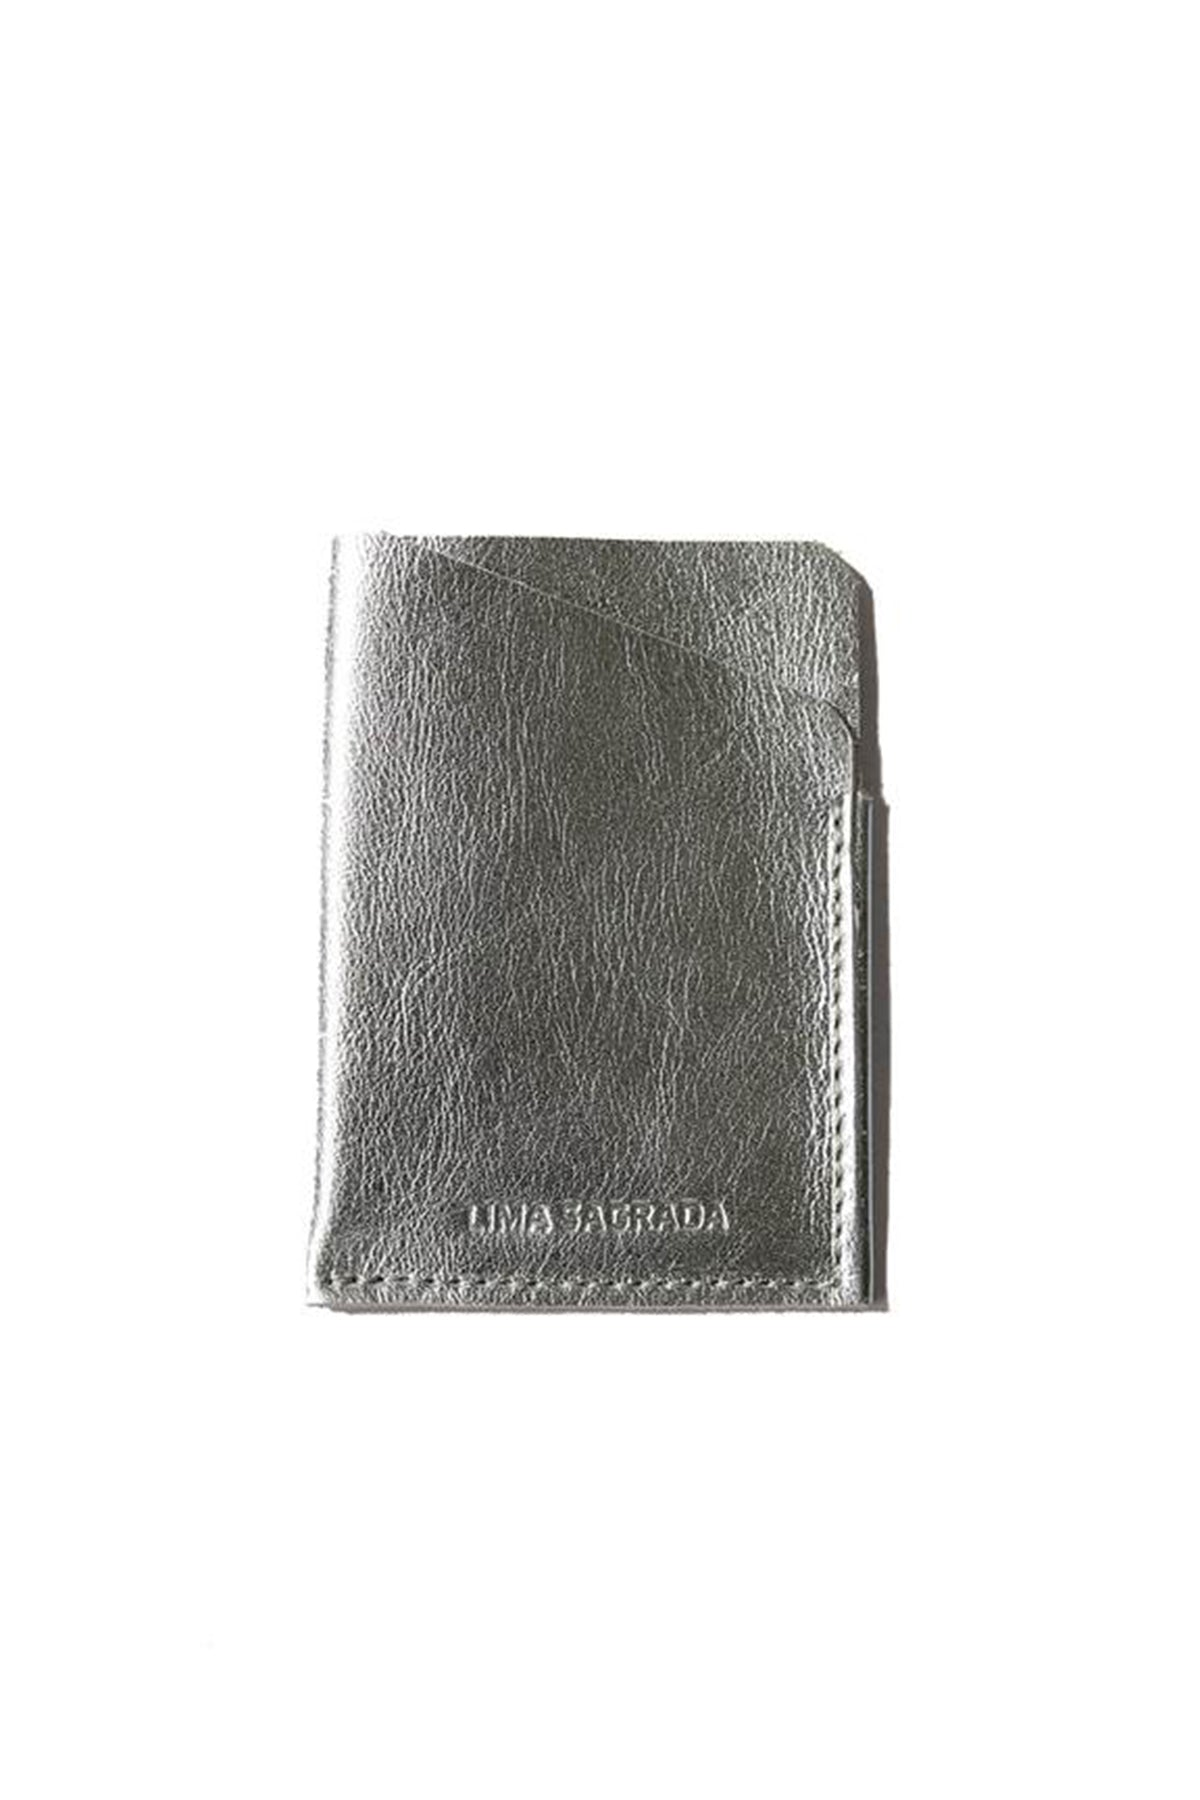 SOFT LEATHER CARD HOLDER BY LIMA SAGRADA